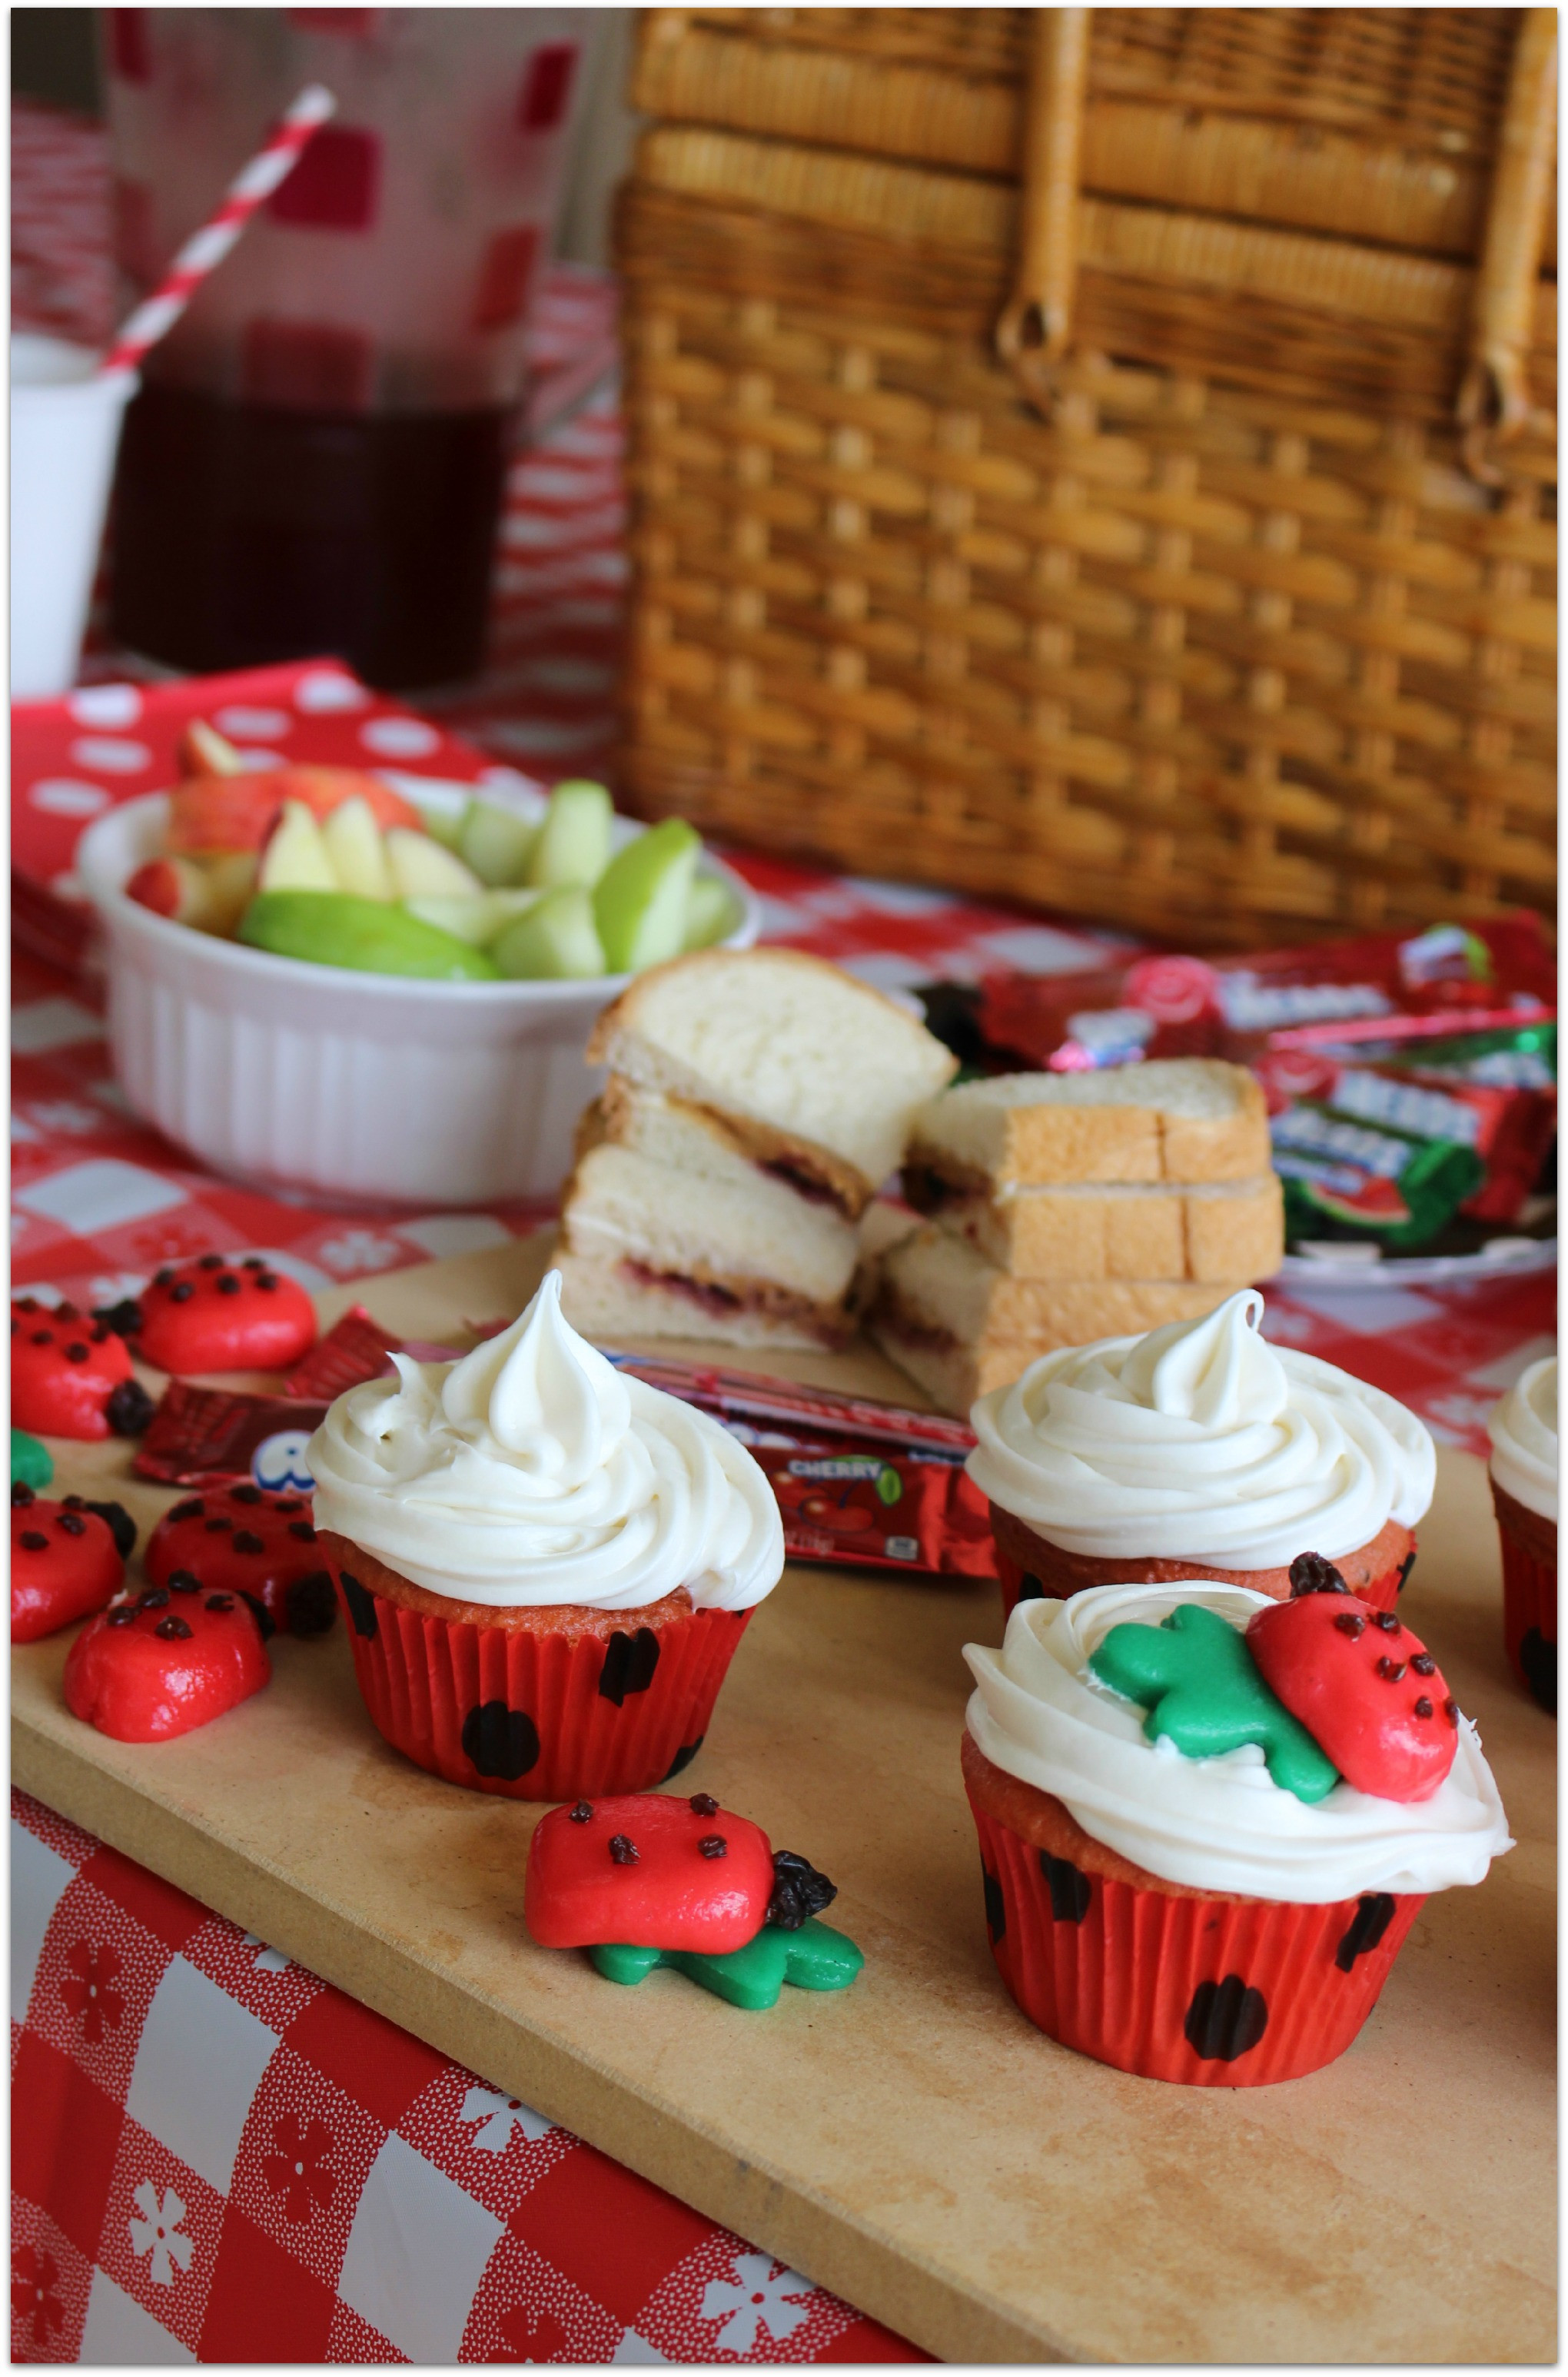 Easy Picnic Desserts  Ladybug Picnic Cupcakes Food Fun & Faraway Places